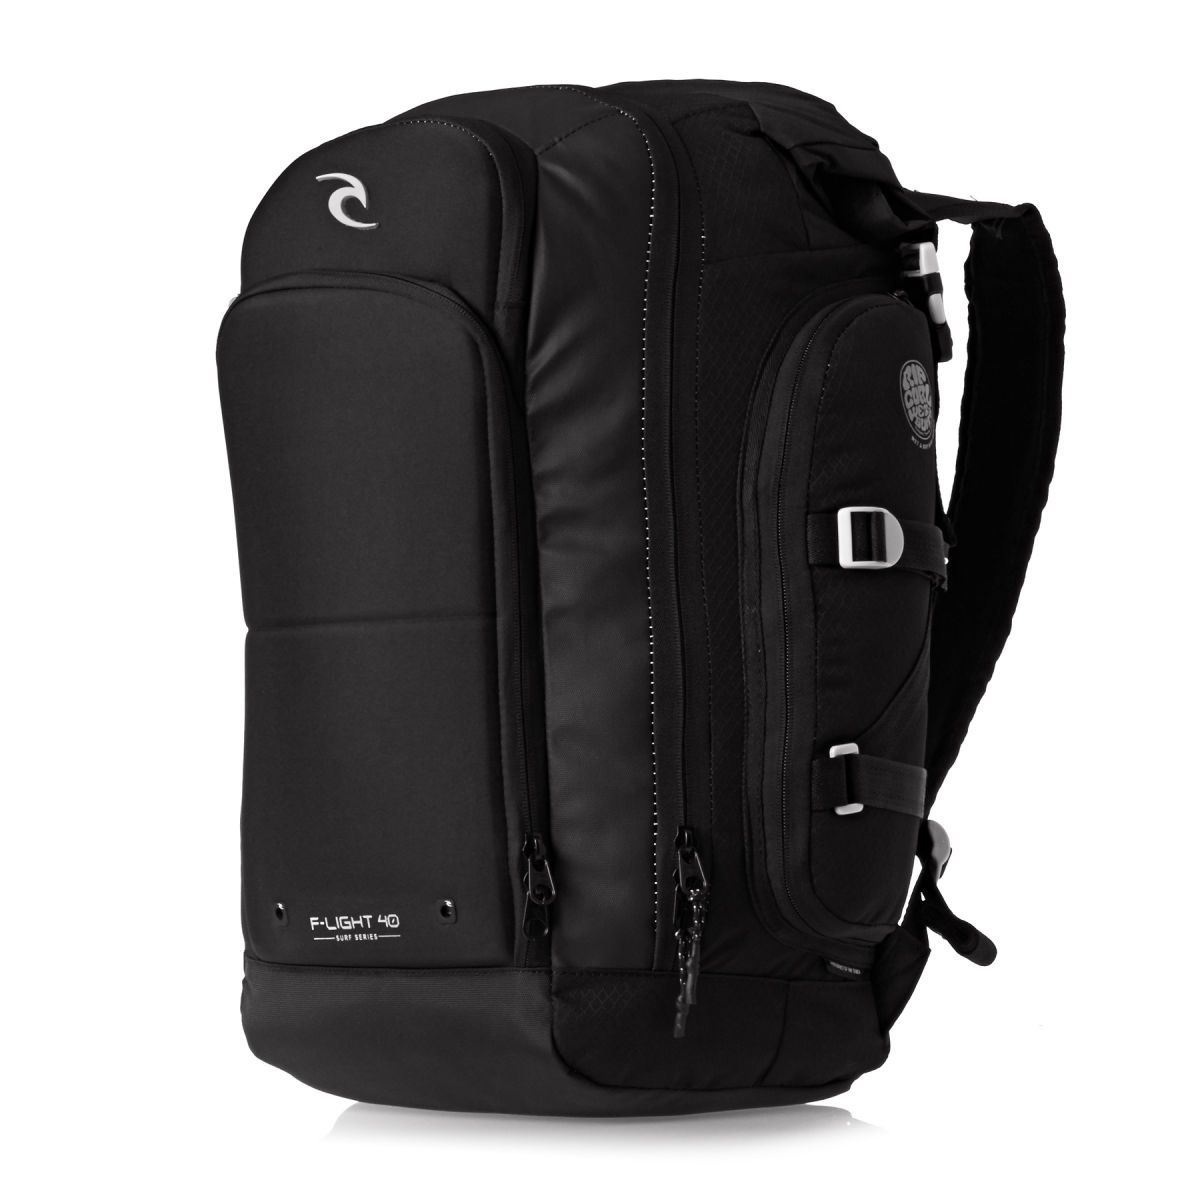 ad63c3408d65 Rip Curl Backpacks - Rip Curl F-light Surf Pack Wet Dry Backpack - Black